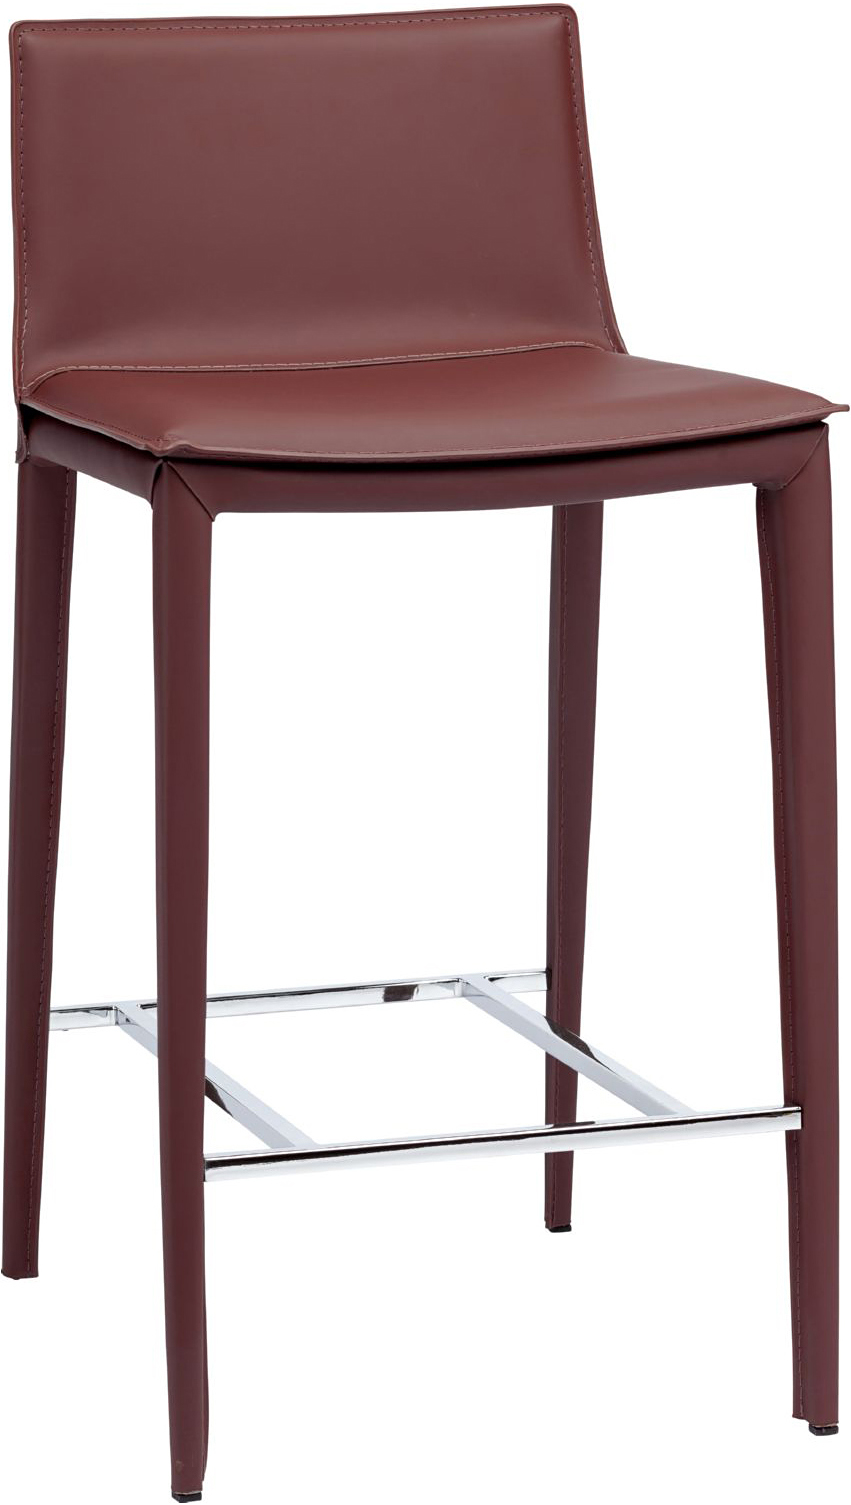 Palma Counter Stool 5 Colors Available By Nuevo Living